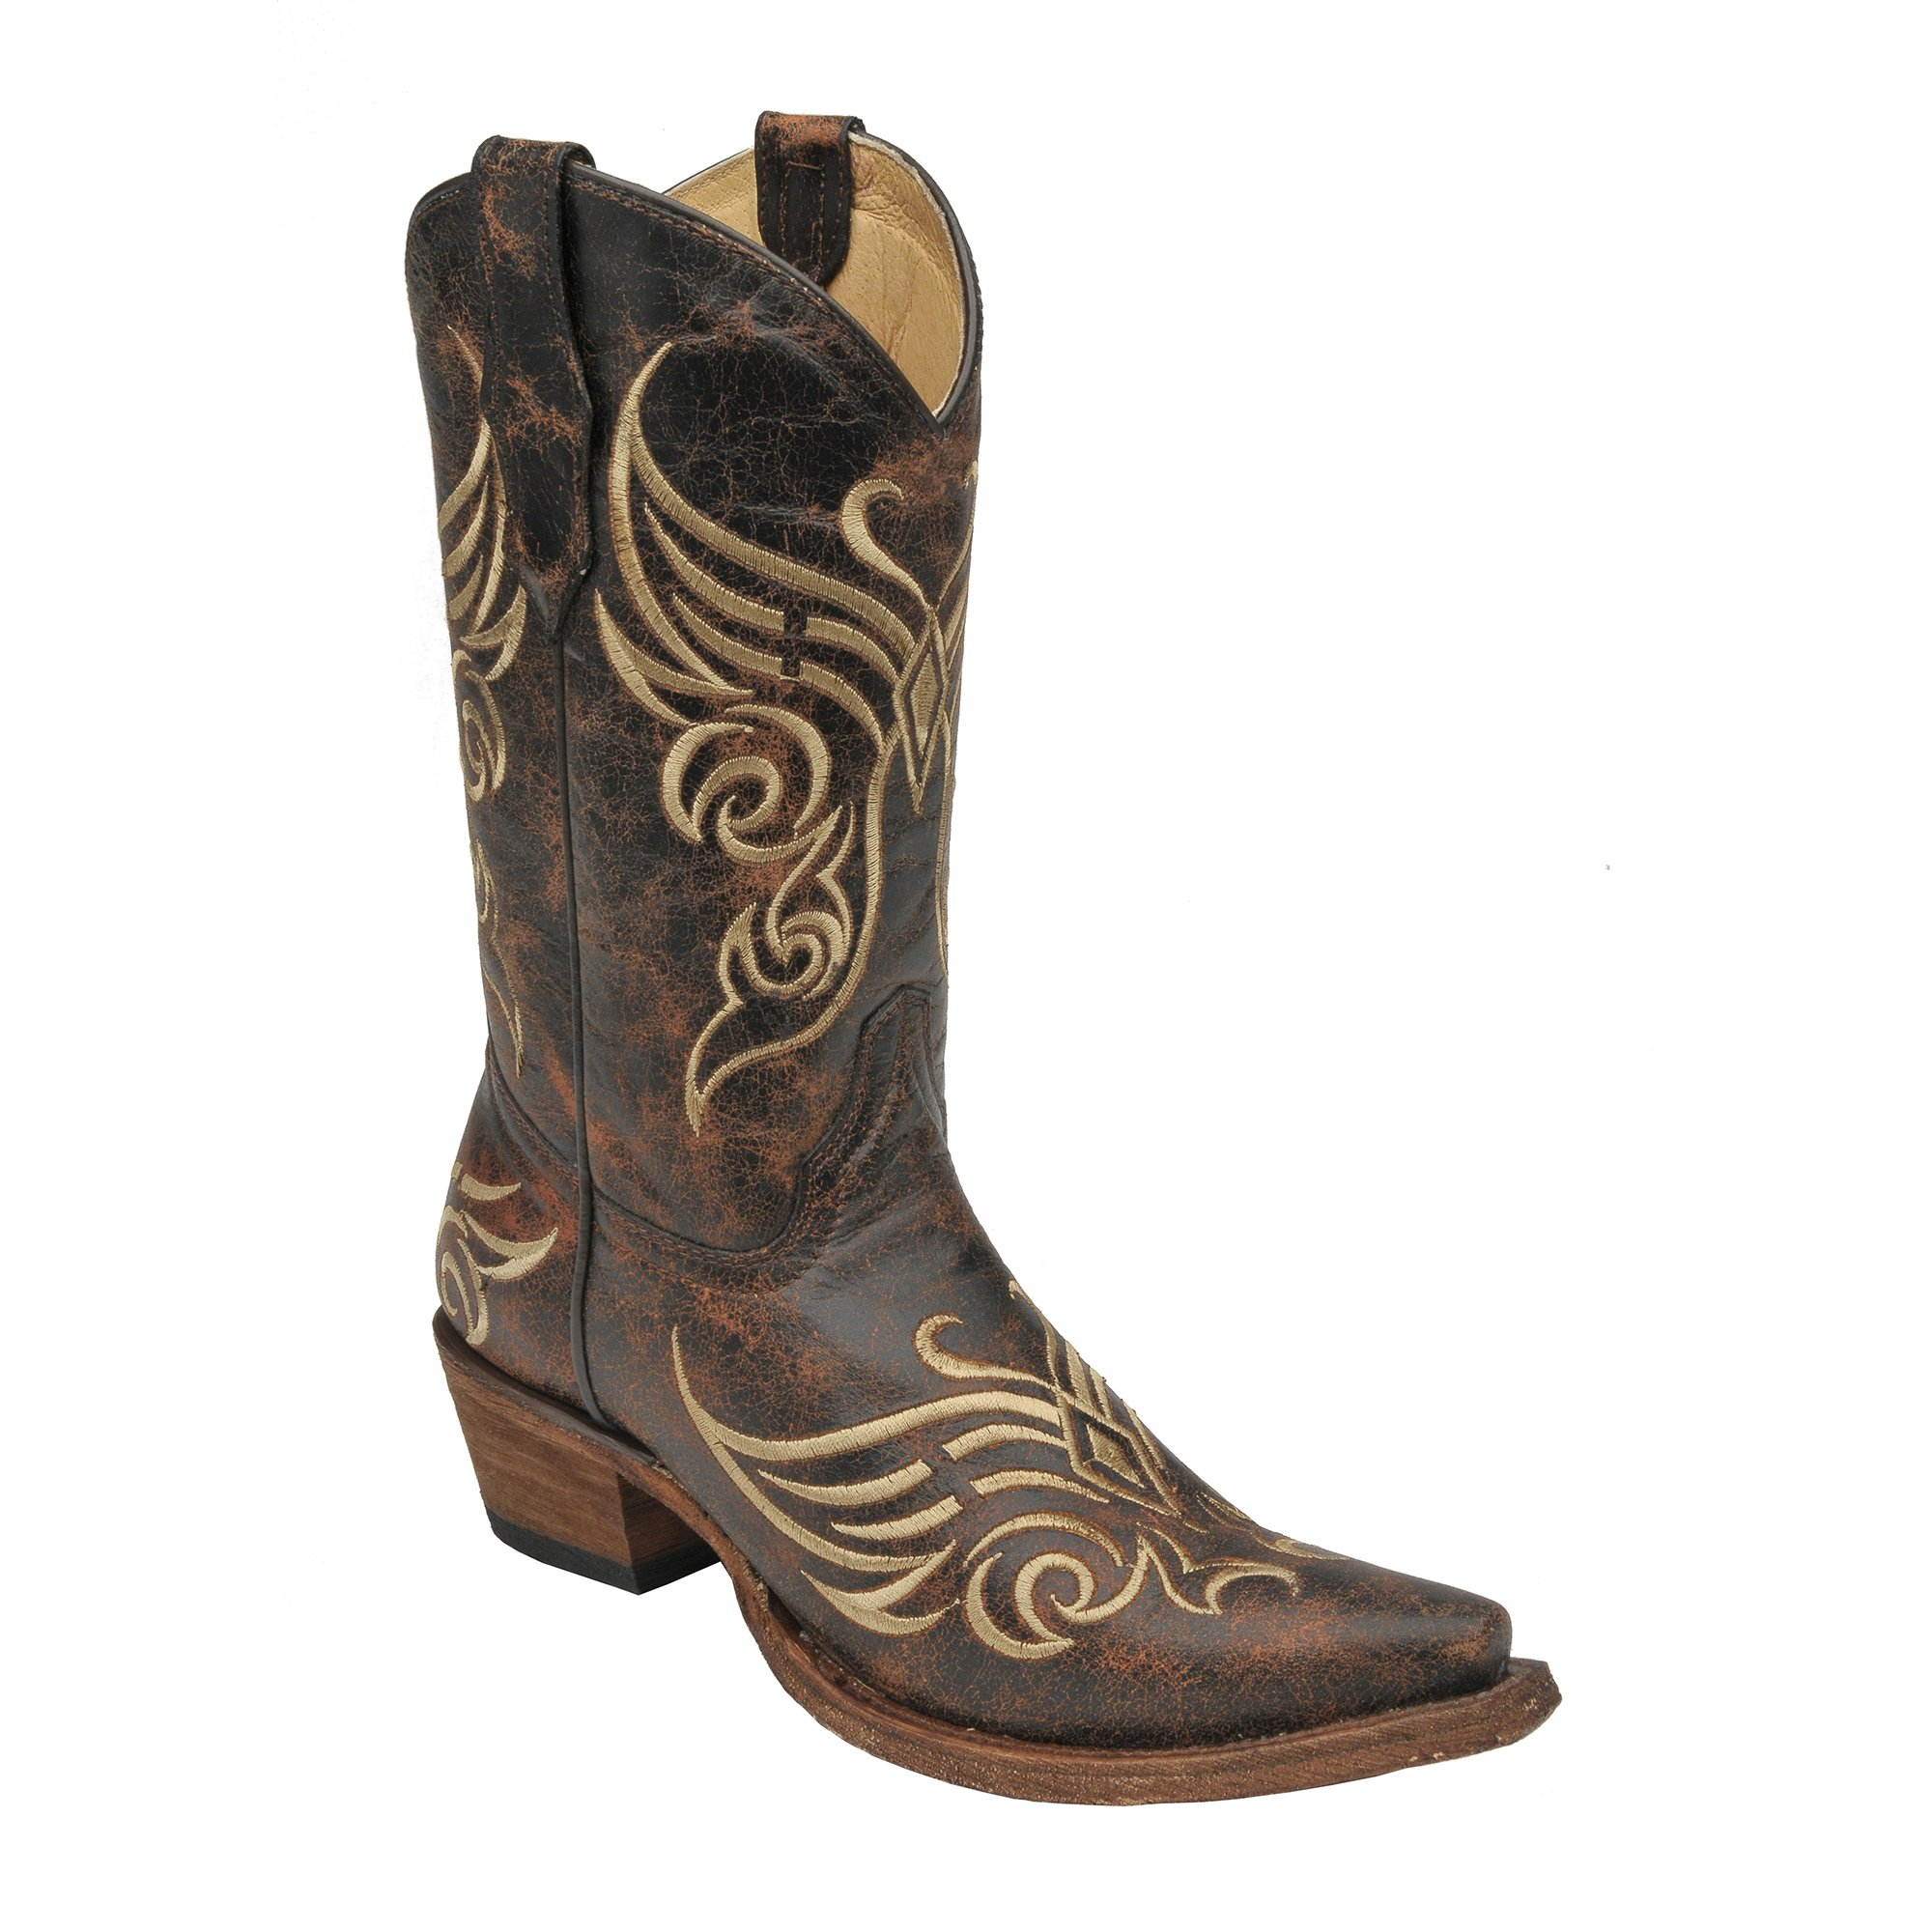 Corral Women's L5002 Butterfly Embroidery Short Top Brown Western Boots 11 M